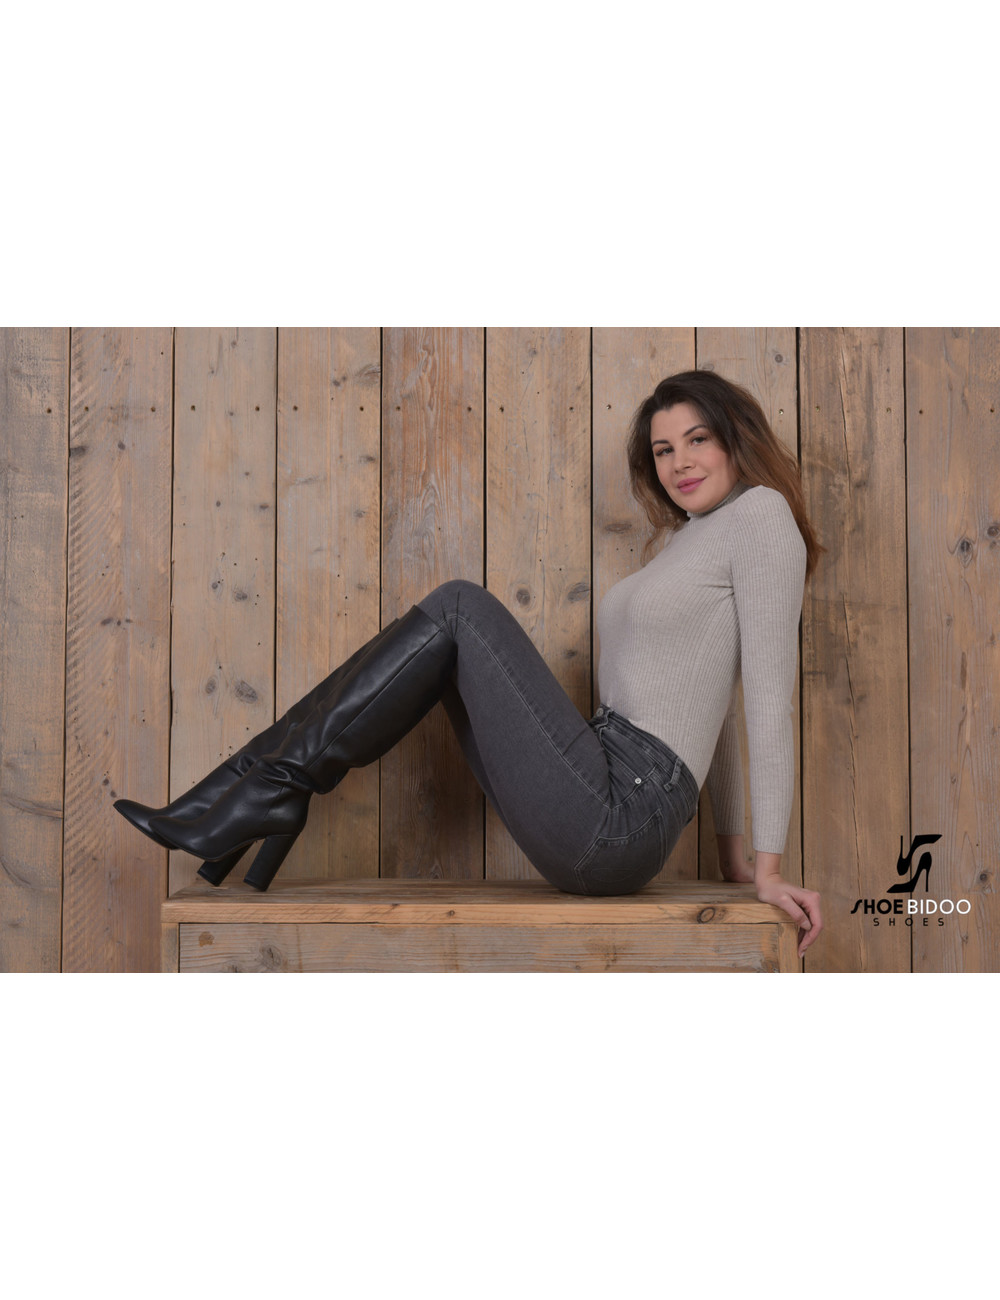 Sanctum Shoes Long pull on knee boots with high heels